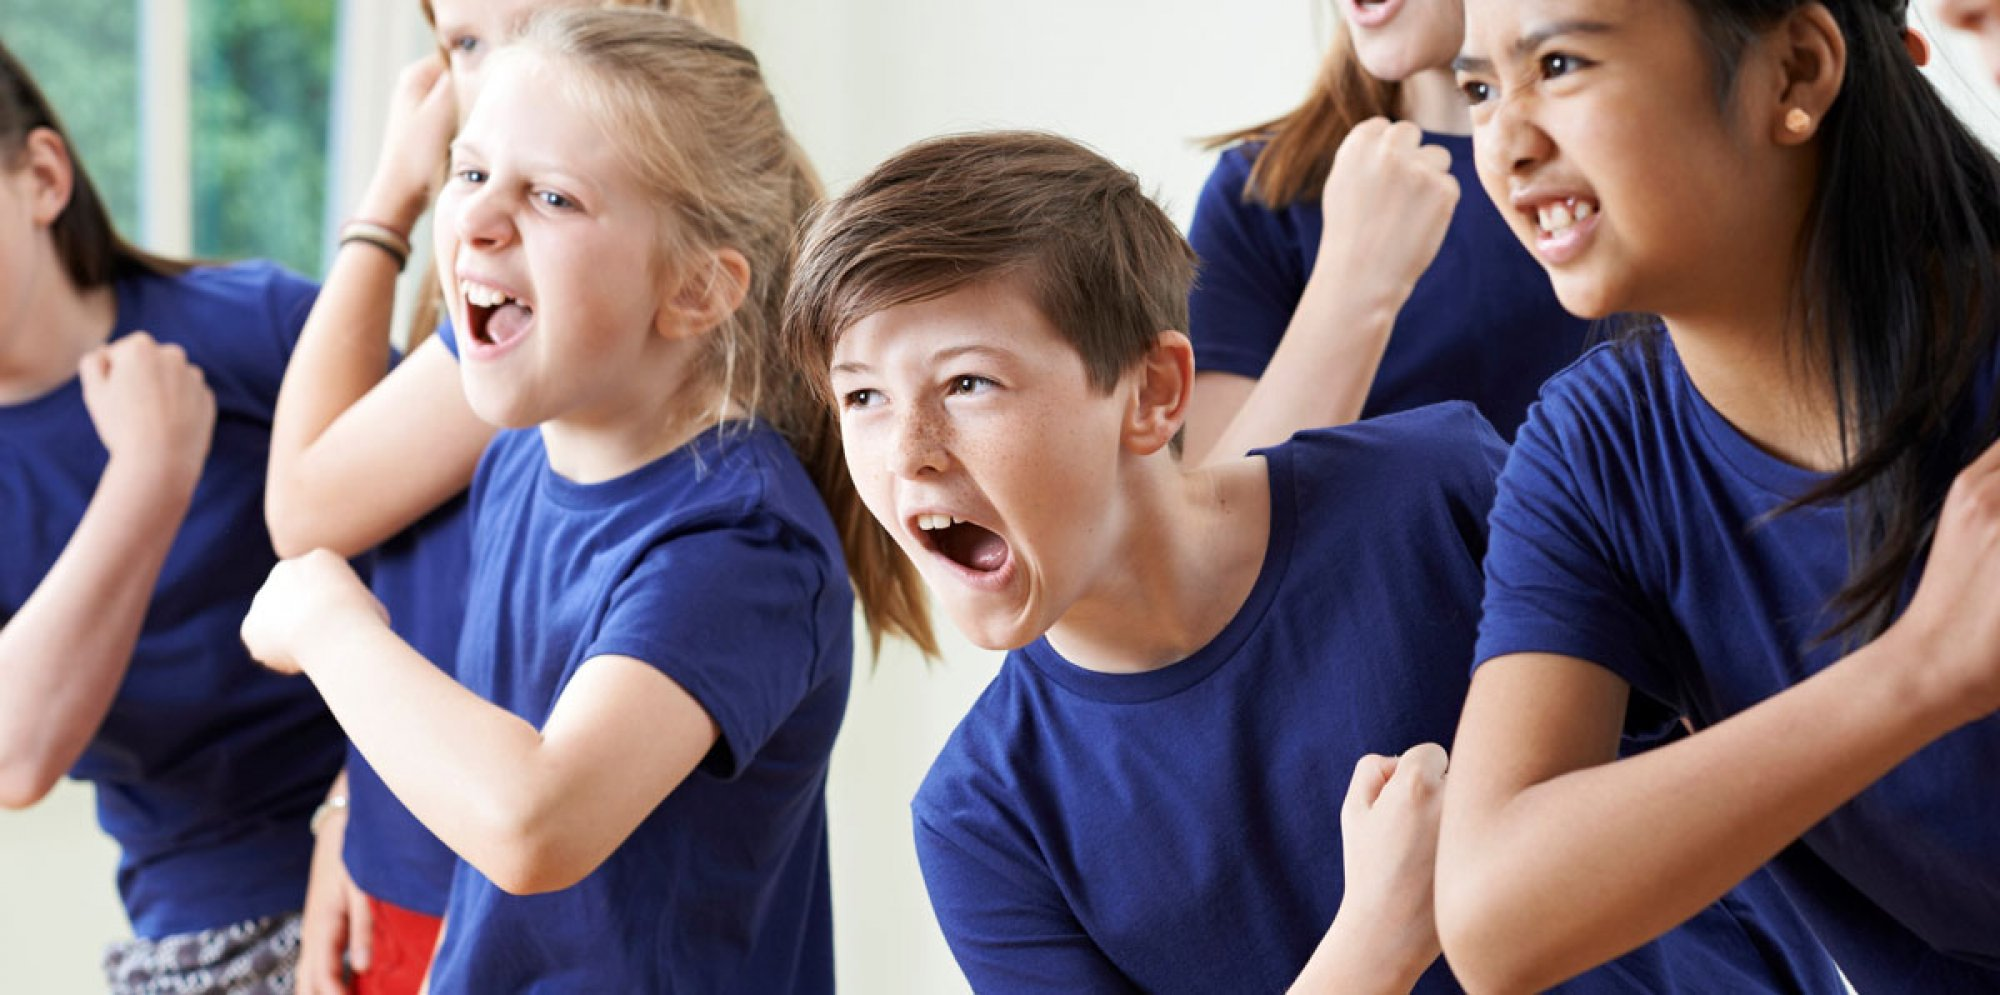 Two kids dressed in blue chanting enthusiastically